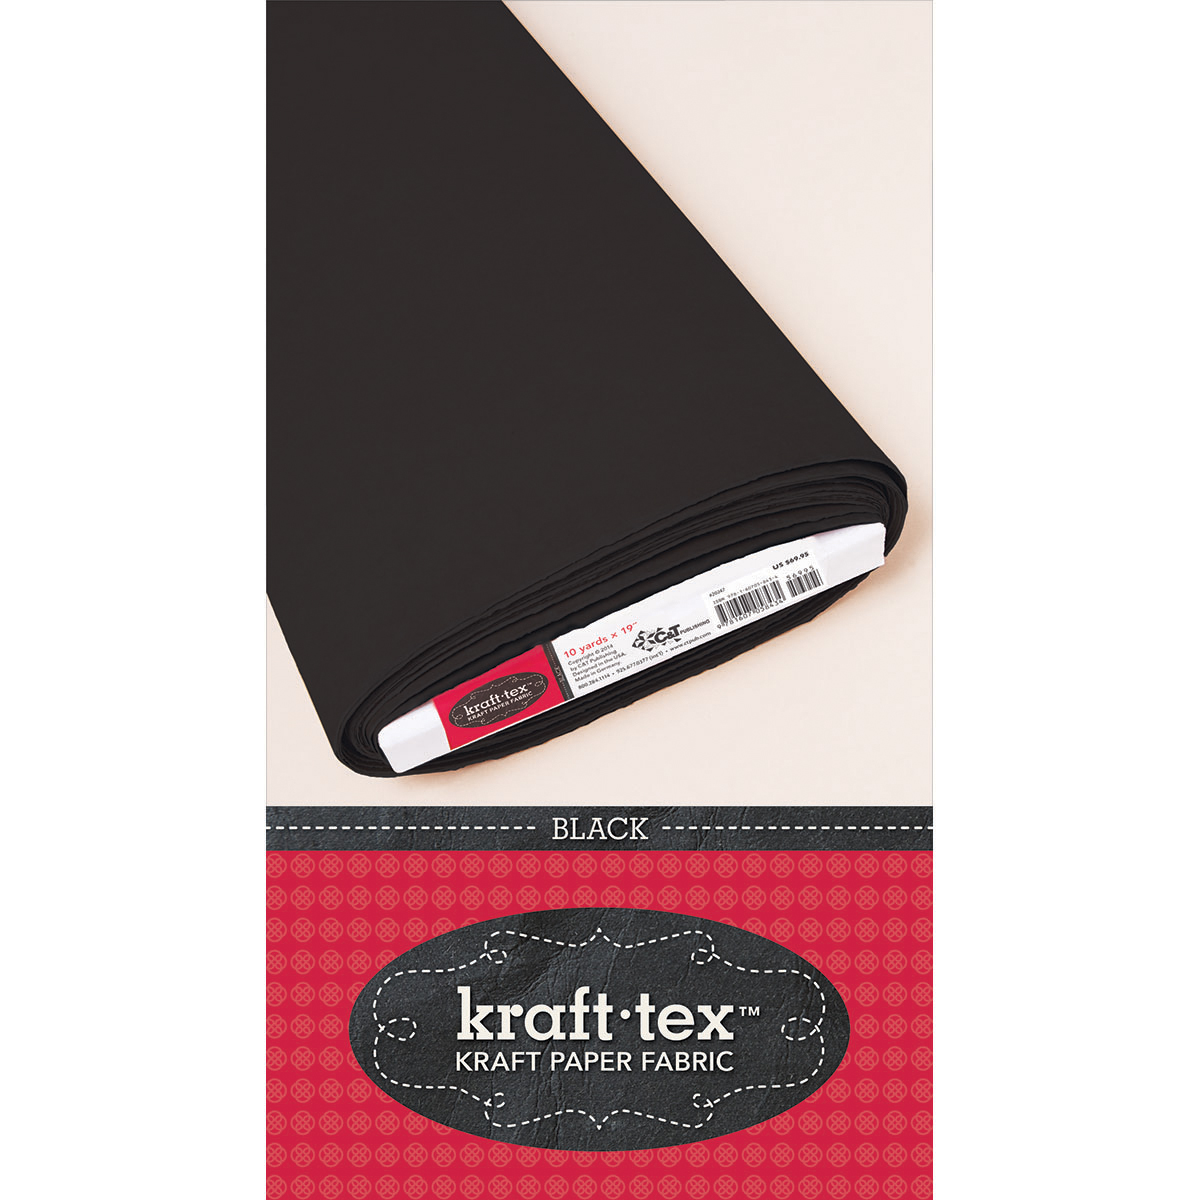 Black -kraft-tex Paper Bolt, Black